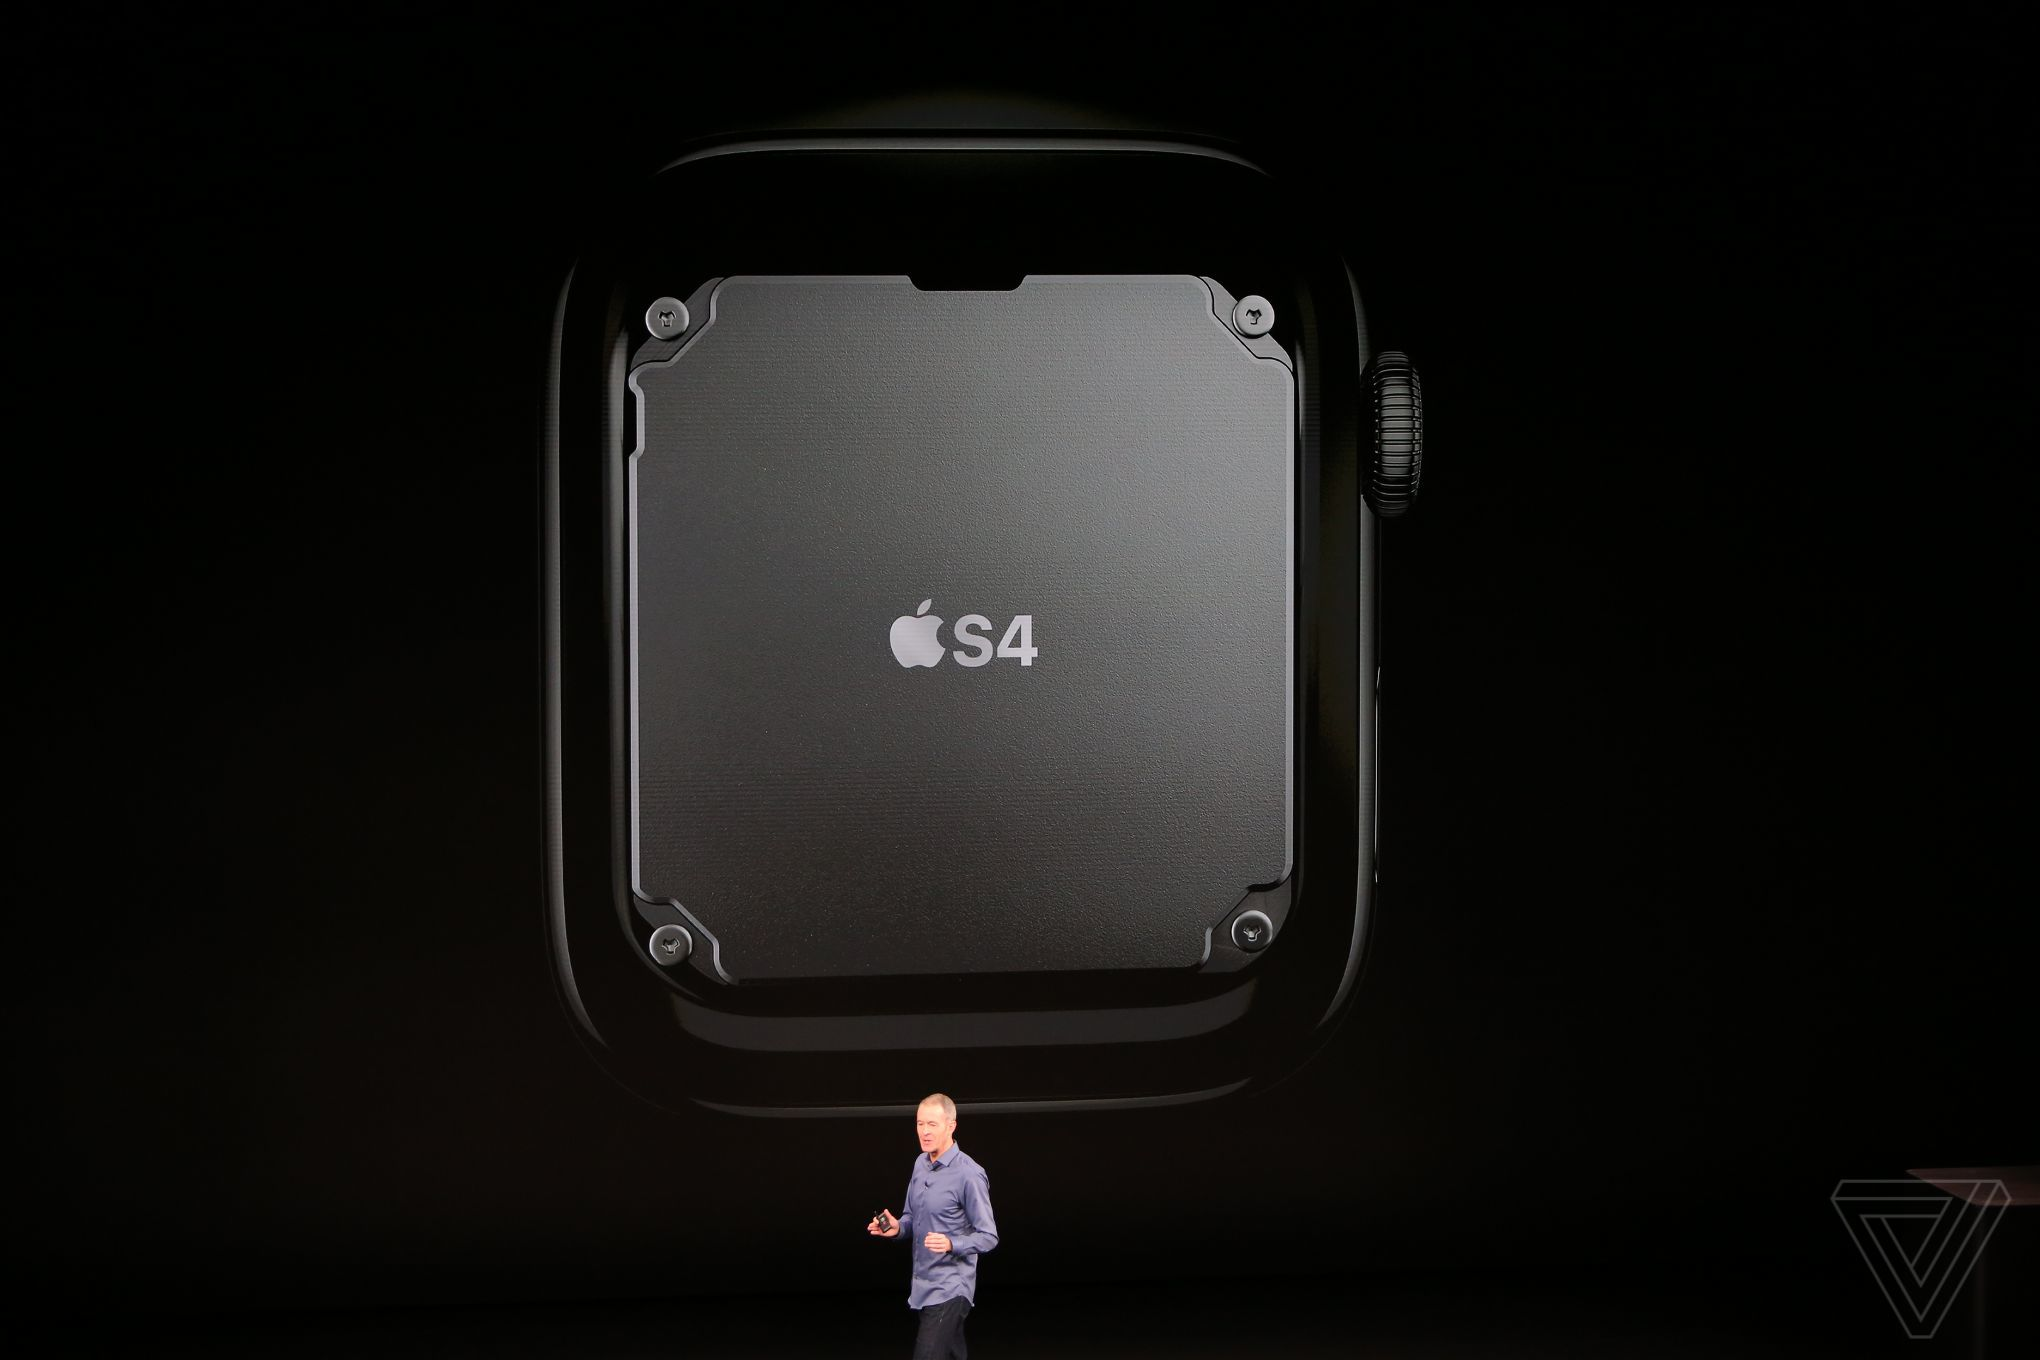 Apple Watch 4 chip s4